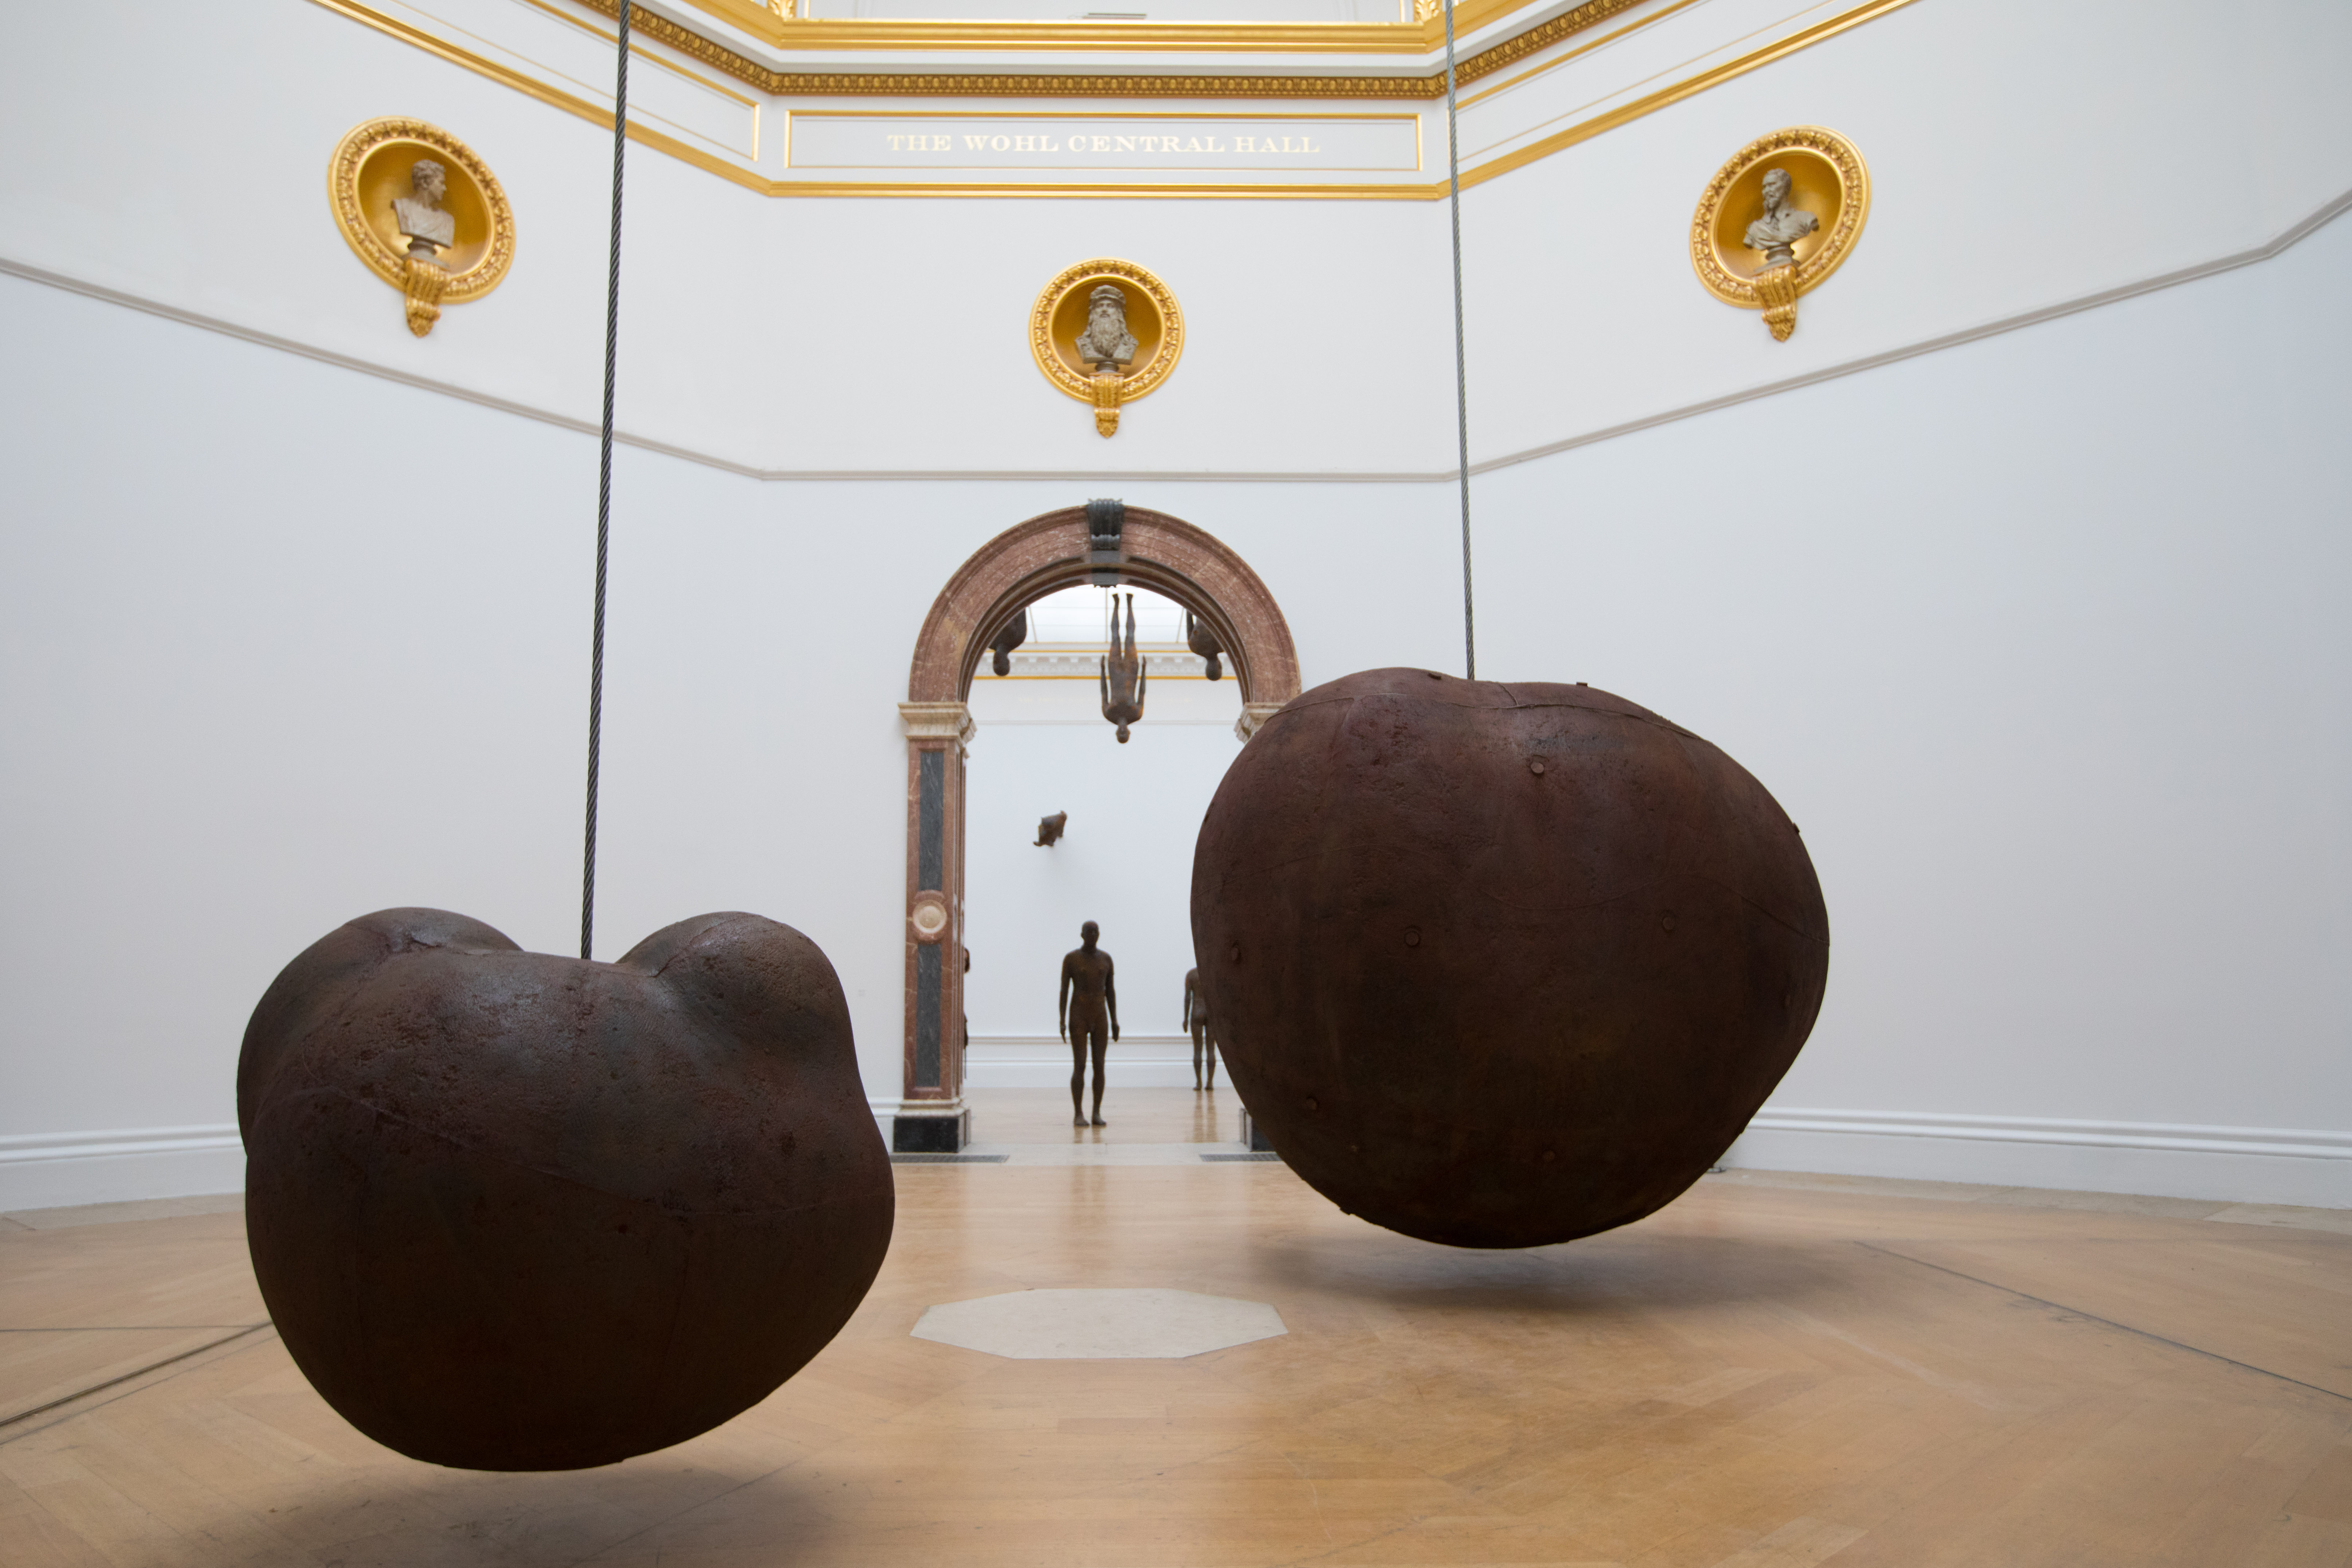 Antony Gormley, Body and Fruit, 1991/93. Cast iron and air, 233 × 265 × 226 cm (Body), 110.7 × 129.5 × 122.5 cm (Fruit). Installation view, 'Antony Gormley', Royal Academy of Arts, London, 21st September to 3rd December 2019 © the Artist. Photo: David Parry / © Royal Academy of Arts